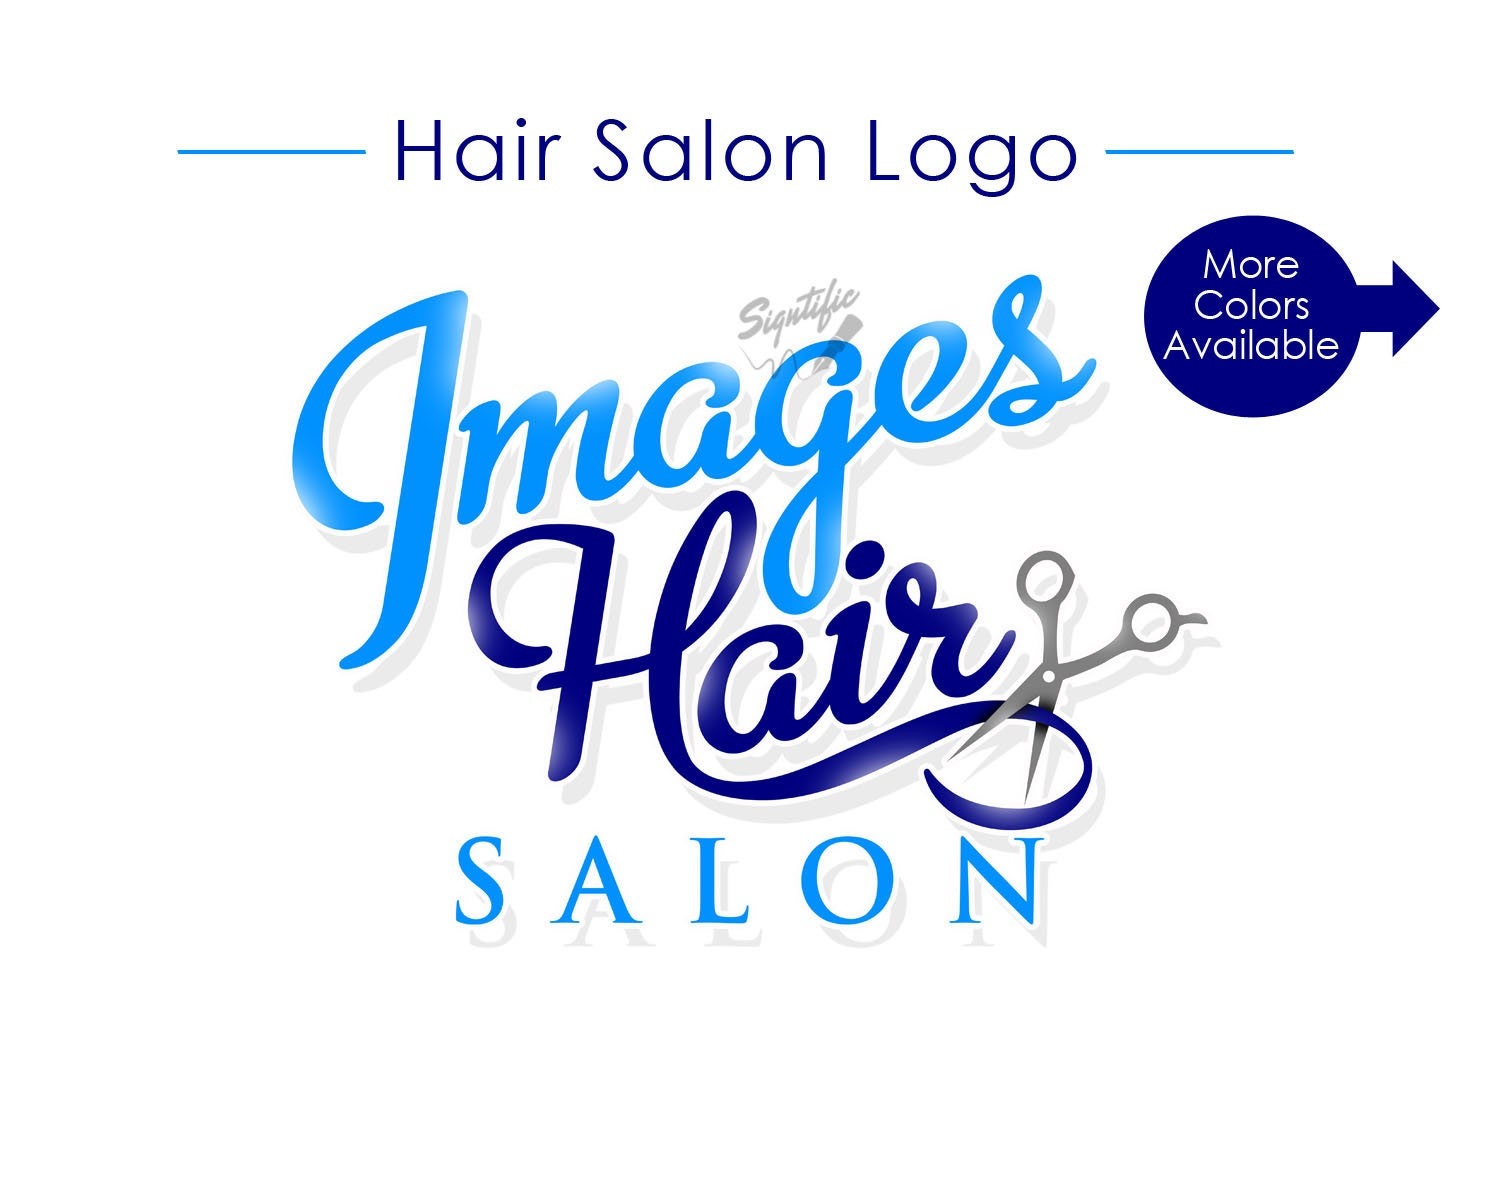 Hair salon logo custom logo logo design logos logo for Address beauty salon